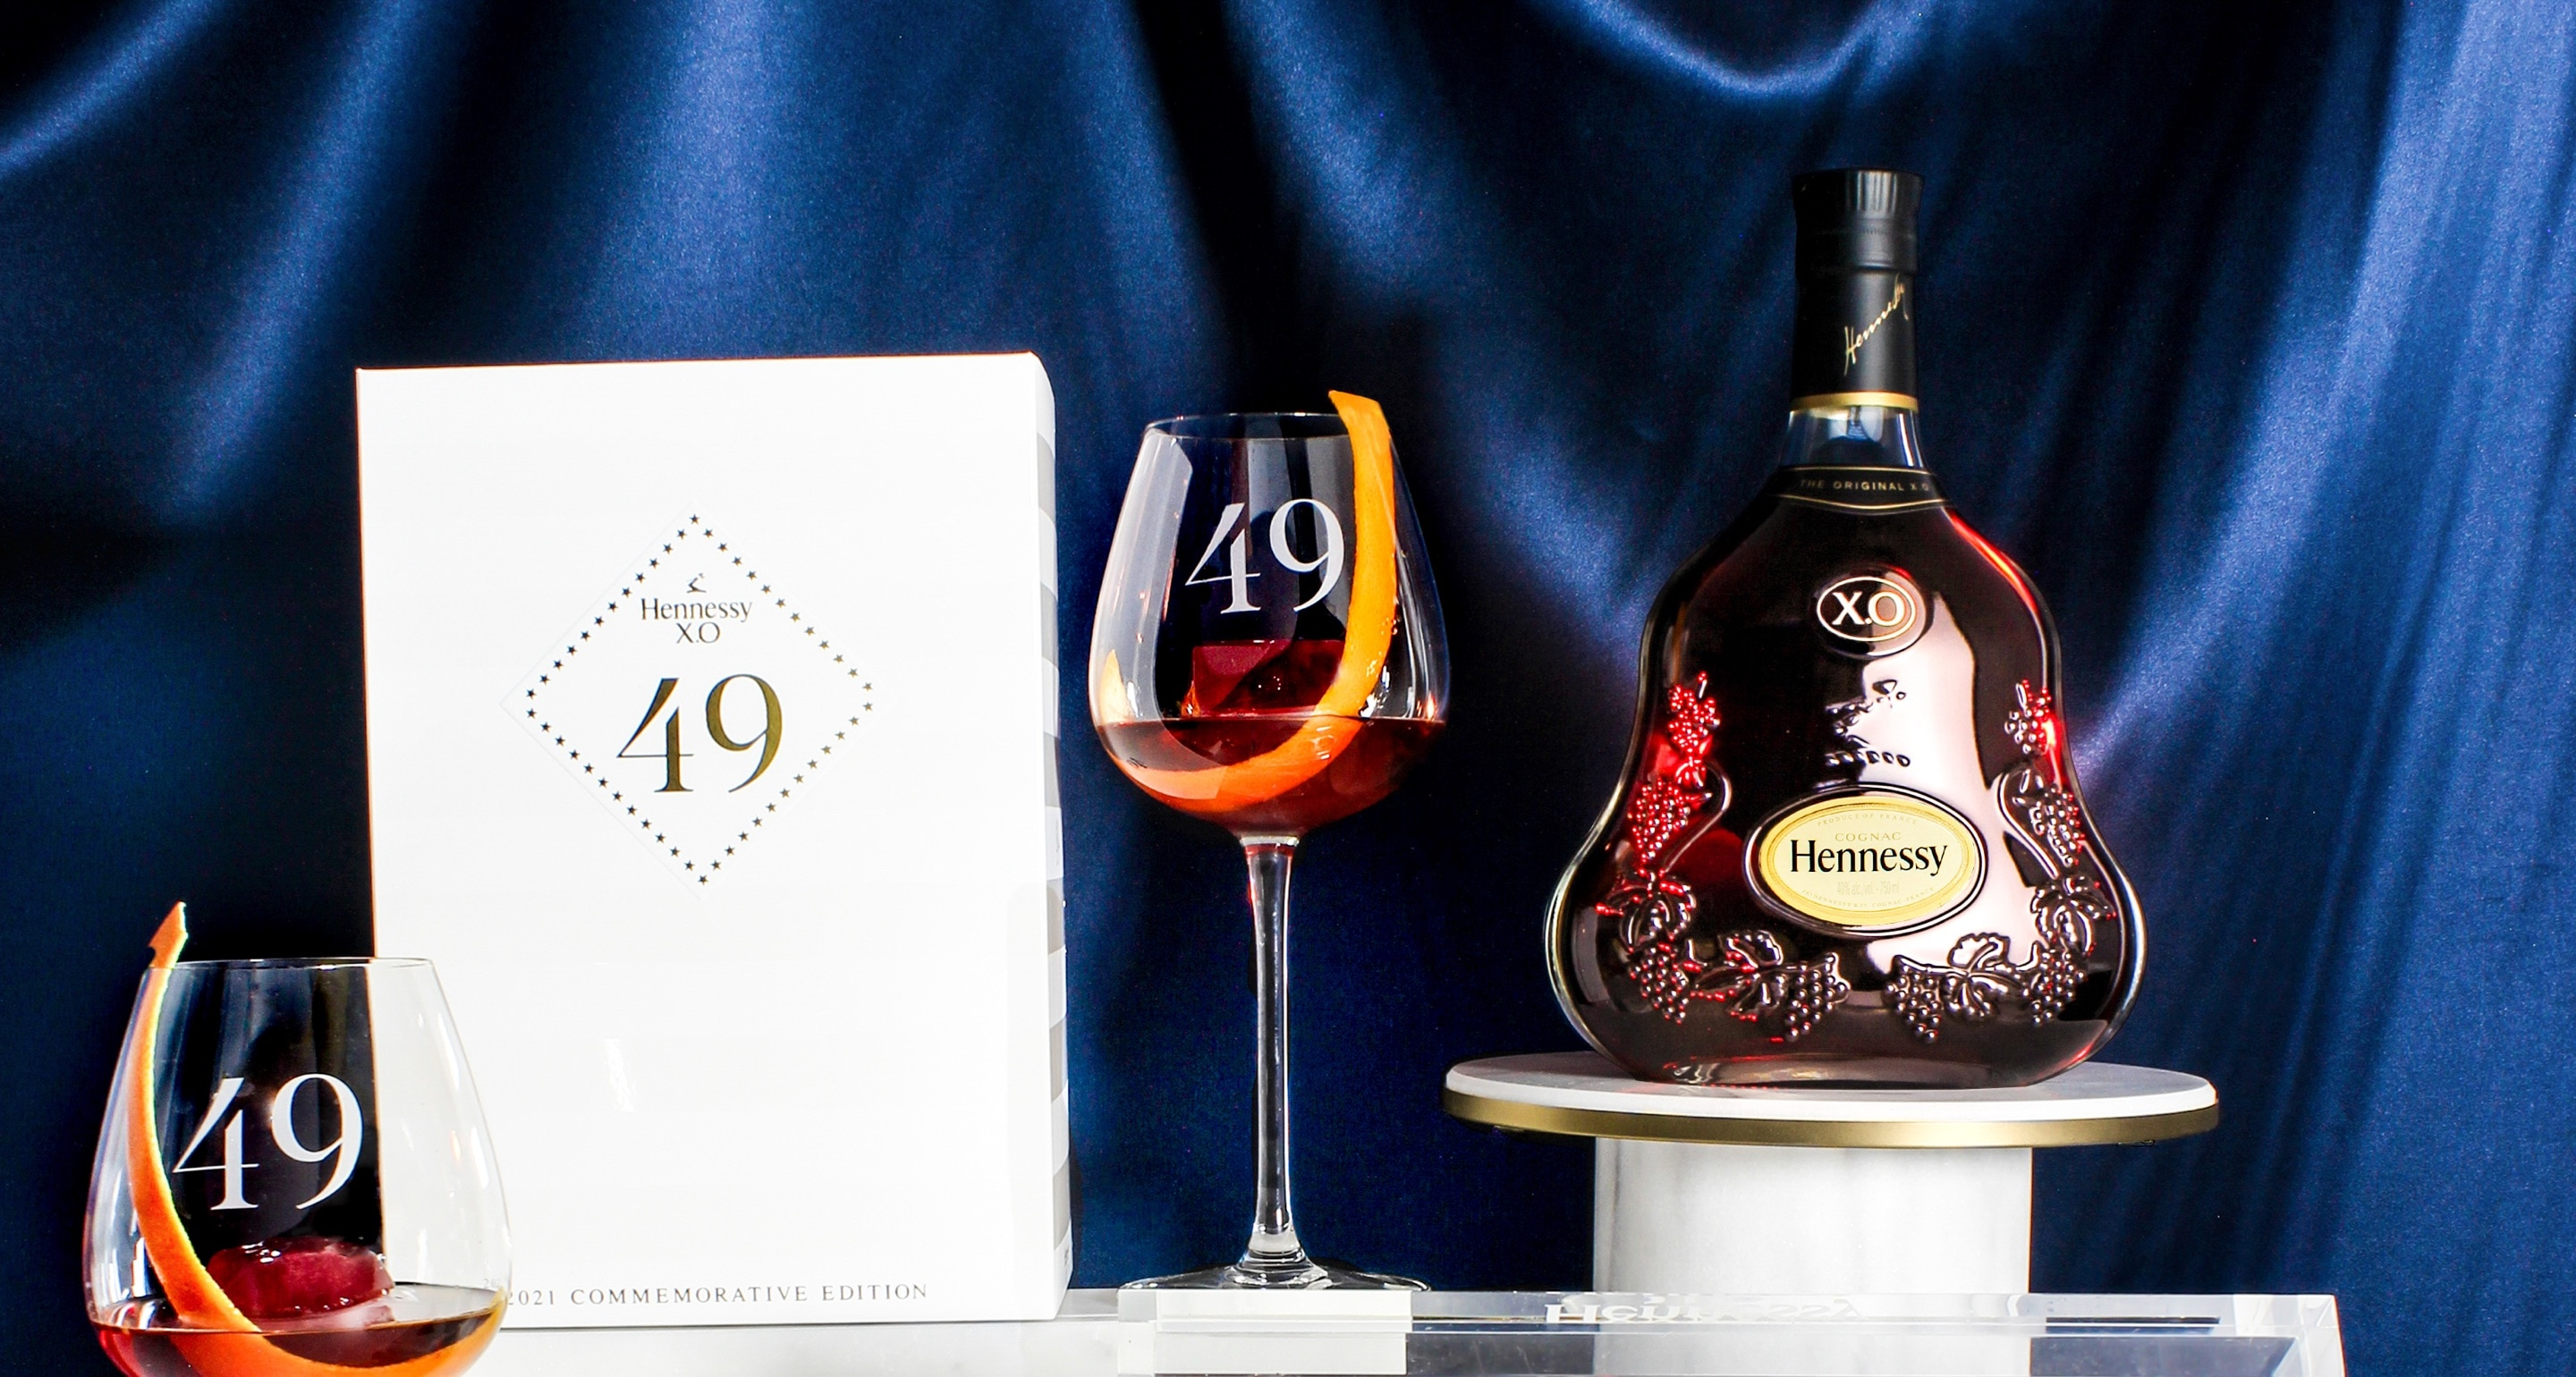 Hennessy X.O cognac 49 Commemorative set featuring etched glasses, ice trays, and limited edition packaging